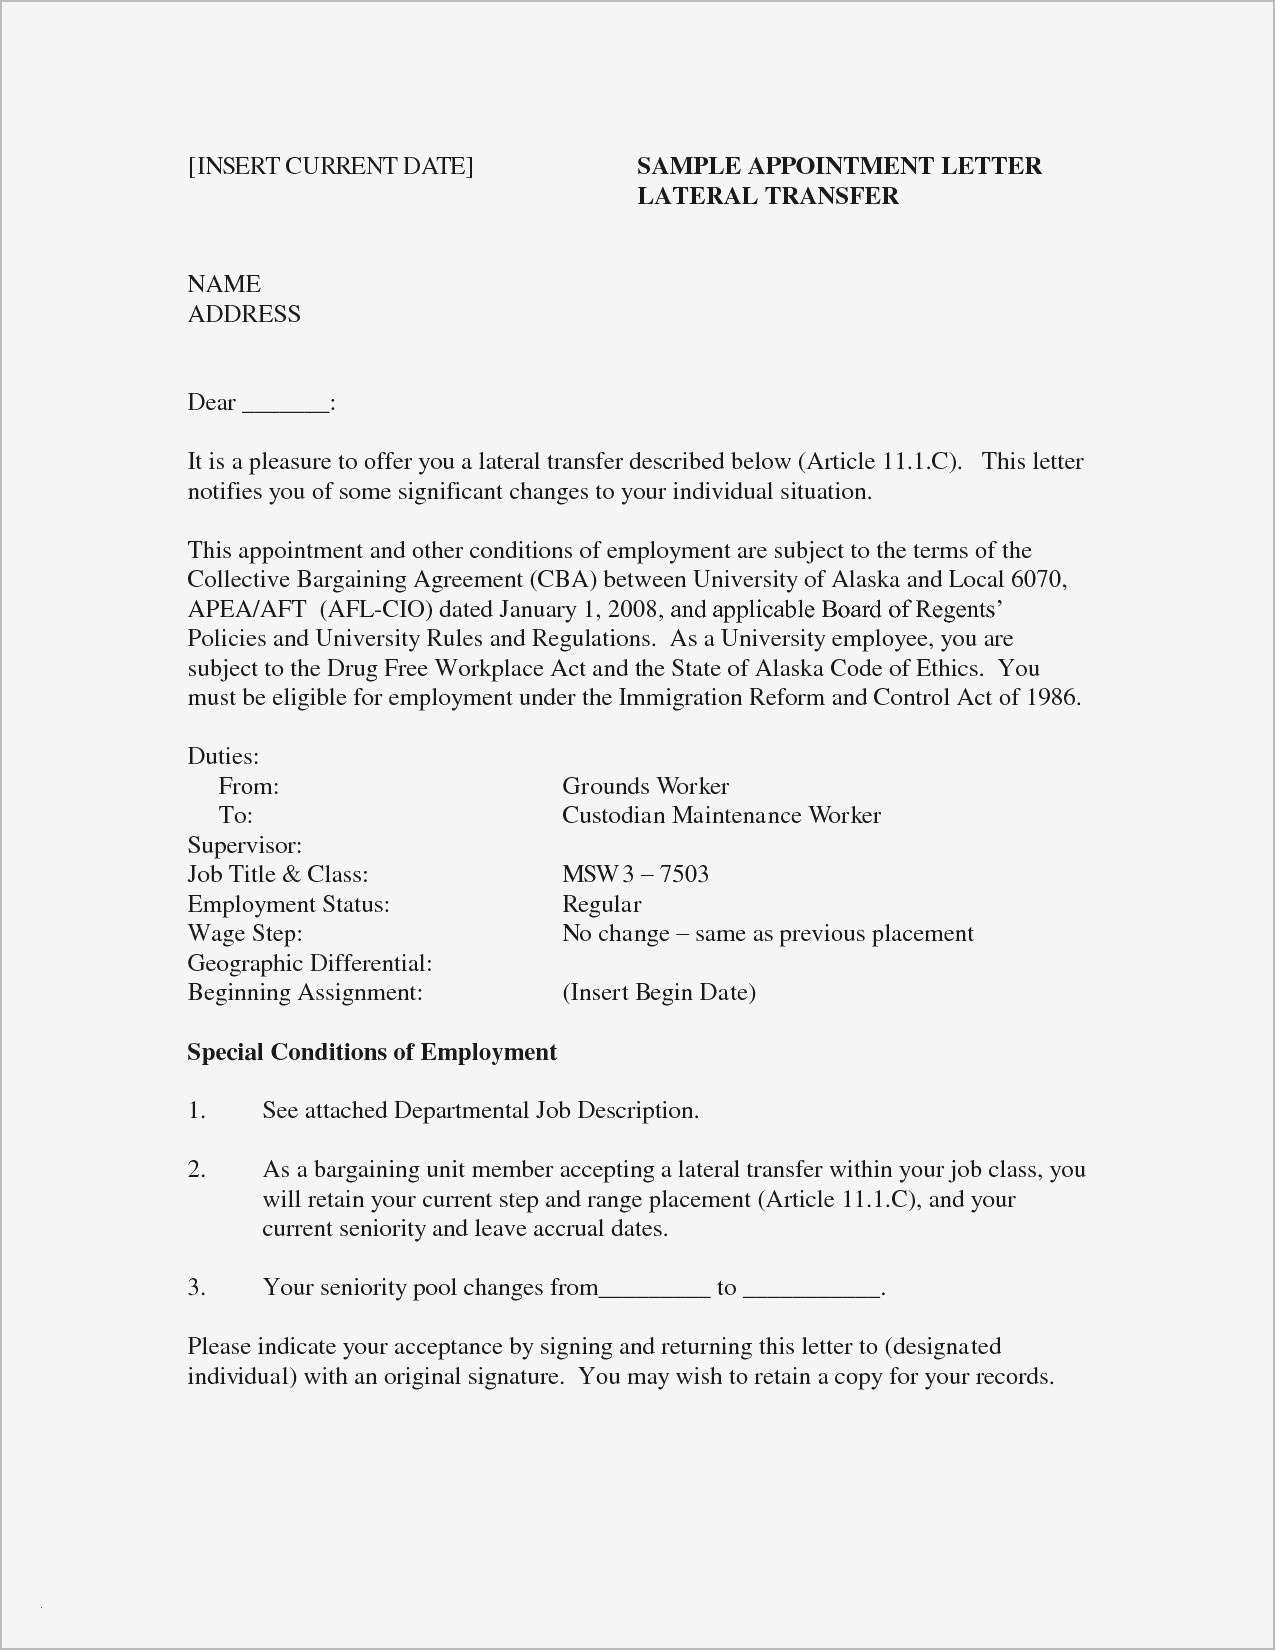 Professional Letter Template Word - Professional Resume Templates Word Legalsocialmobilitypartnership